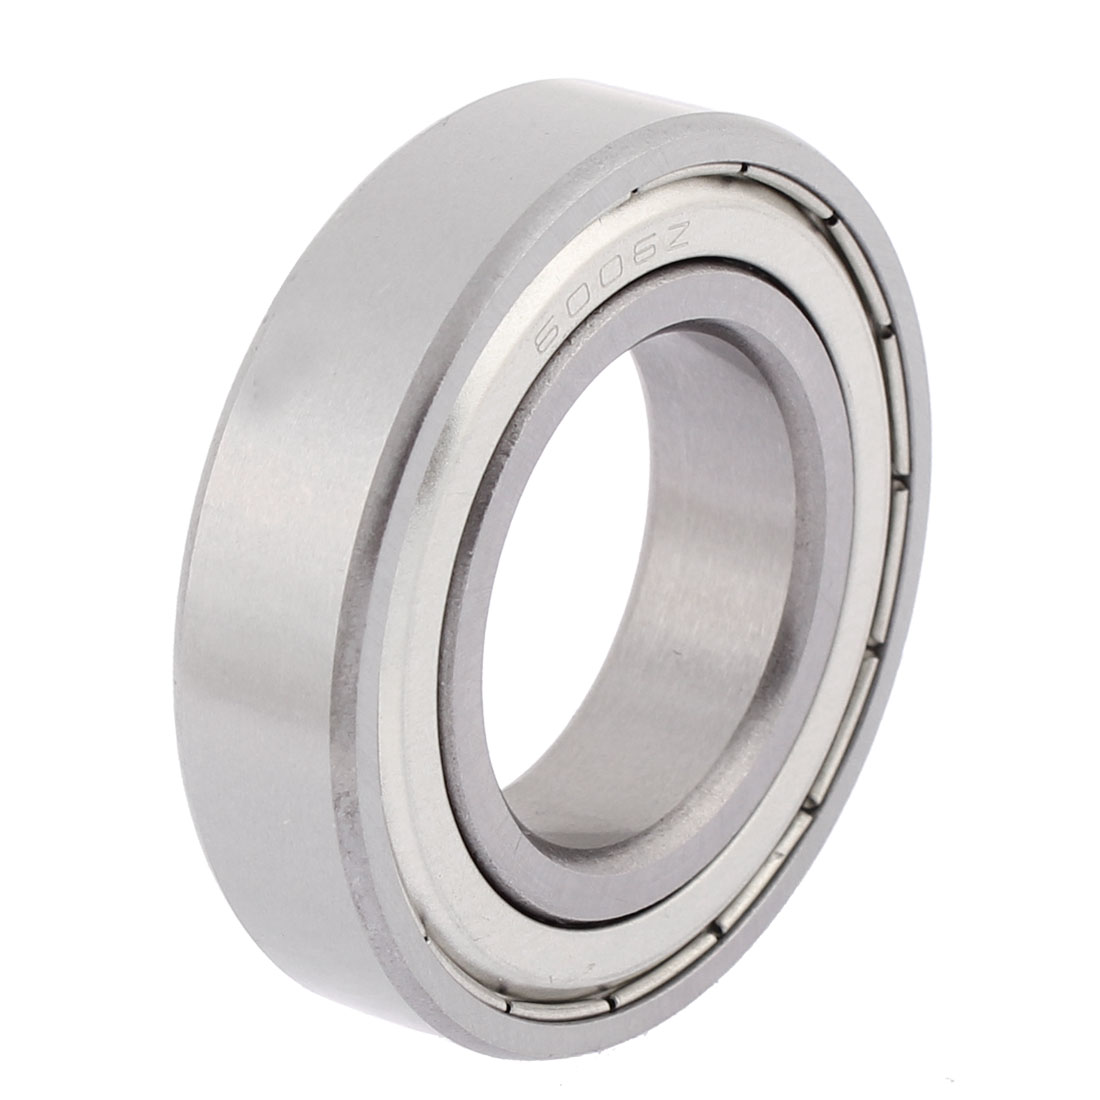 54Mm X 31Mm X 13Mm Double Shielded 6006Z Metal Deep Groove Guide Pulley Rail Ball Wheel Bearings Silver Tone(China (Mainland))